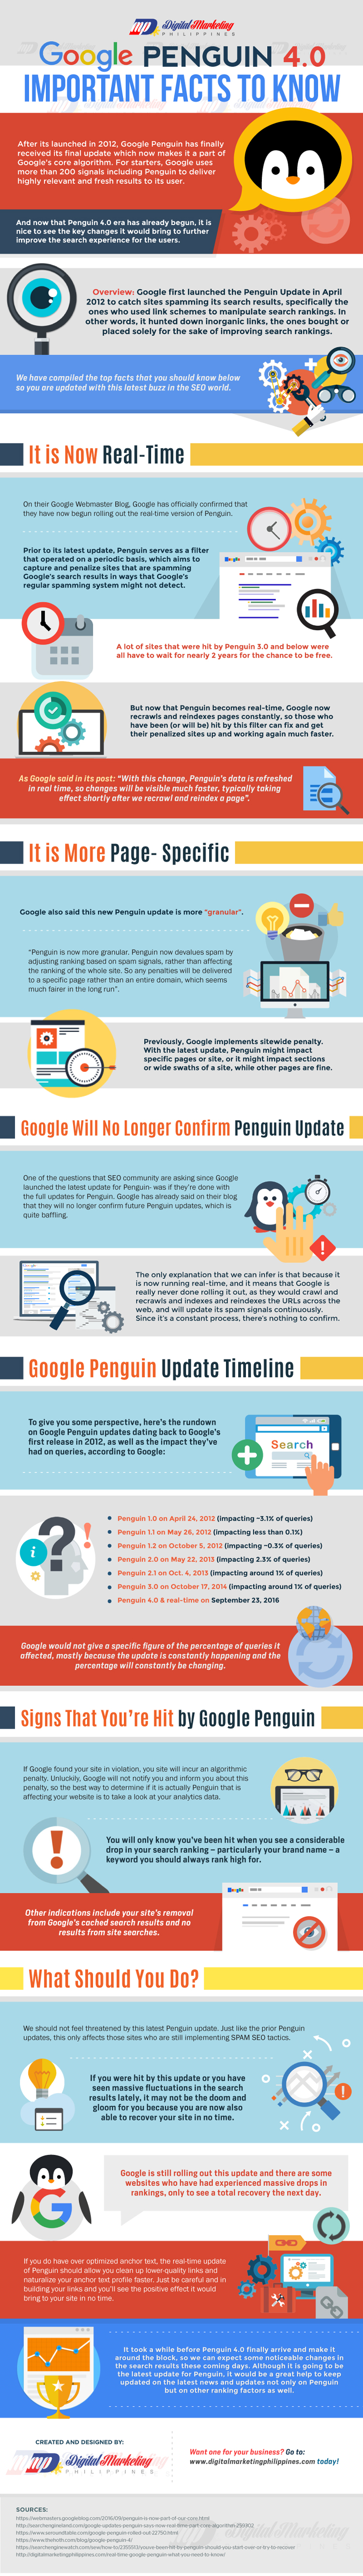 google-penguin-4-0-important-facts-to-know